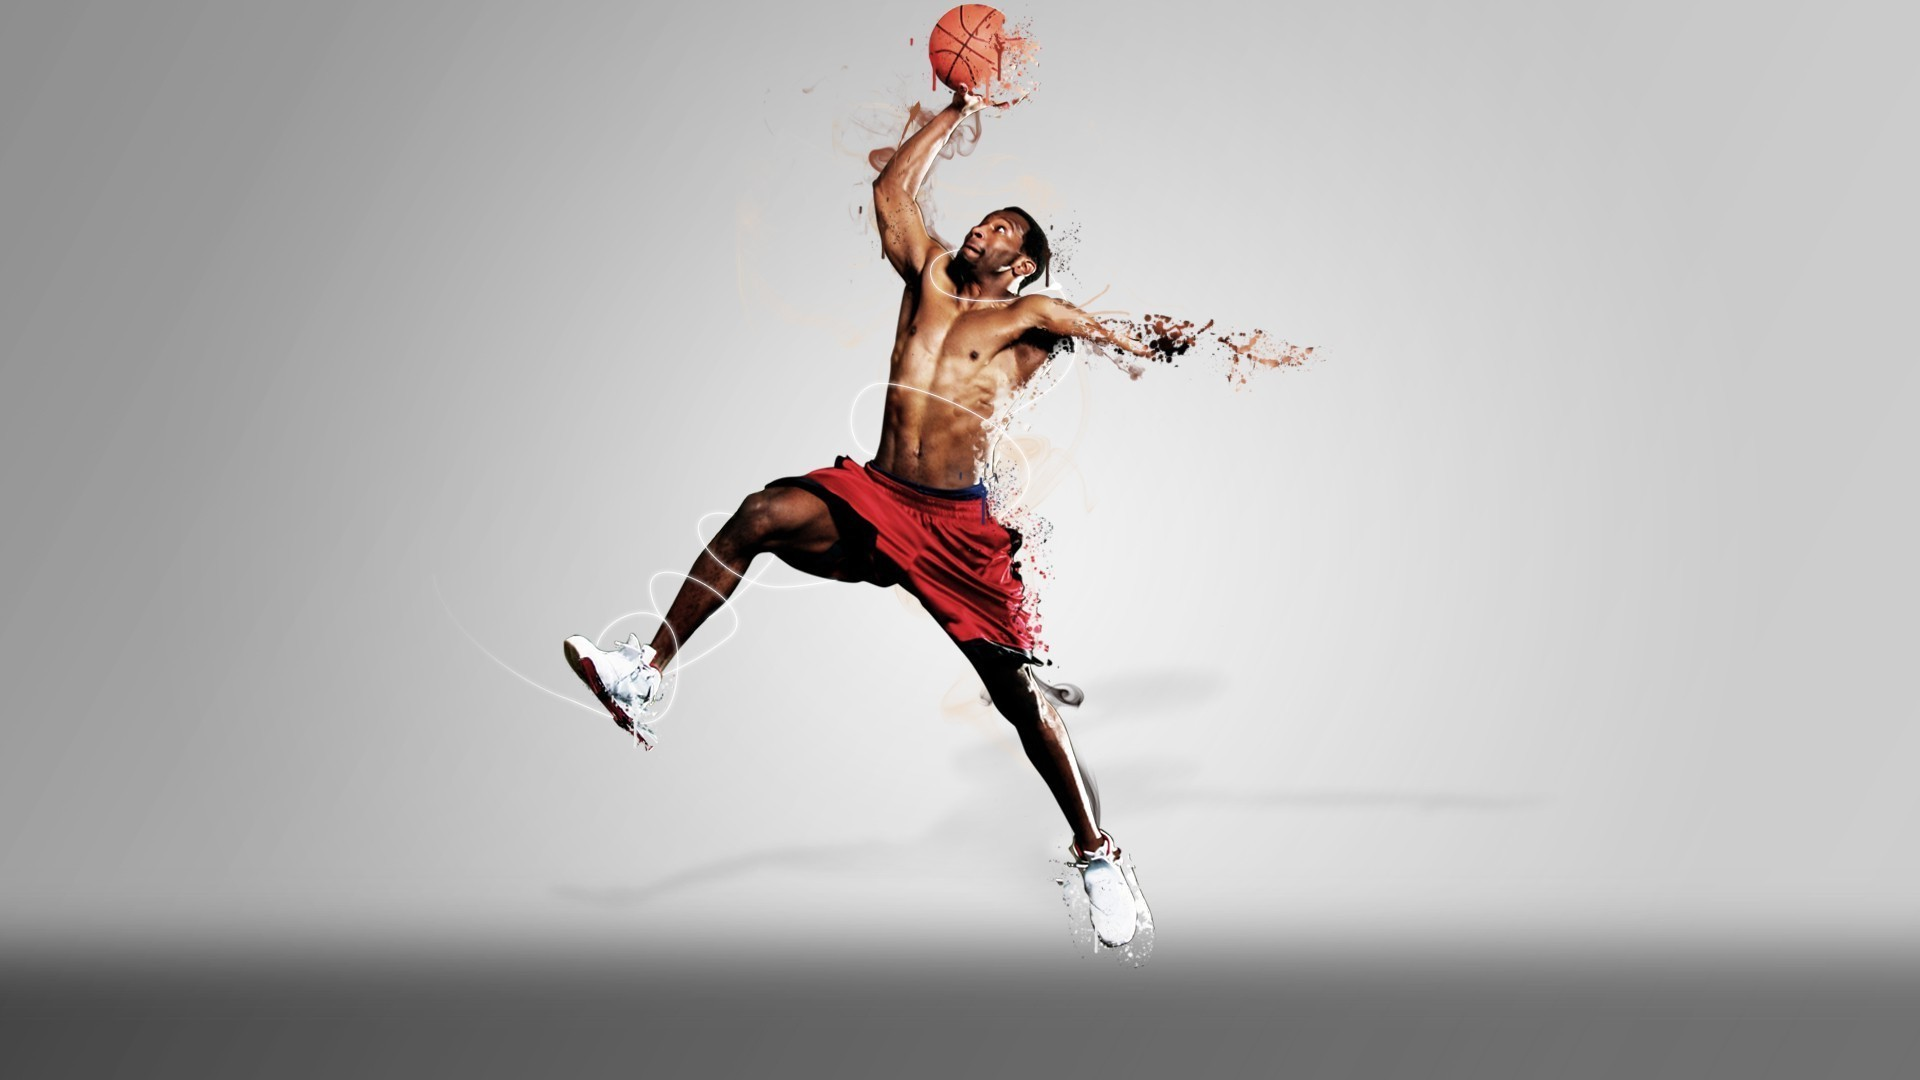 67+ Basketball Wallpapers ·① Download Free Cool Wallpapers